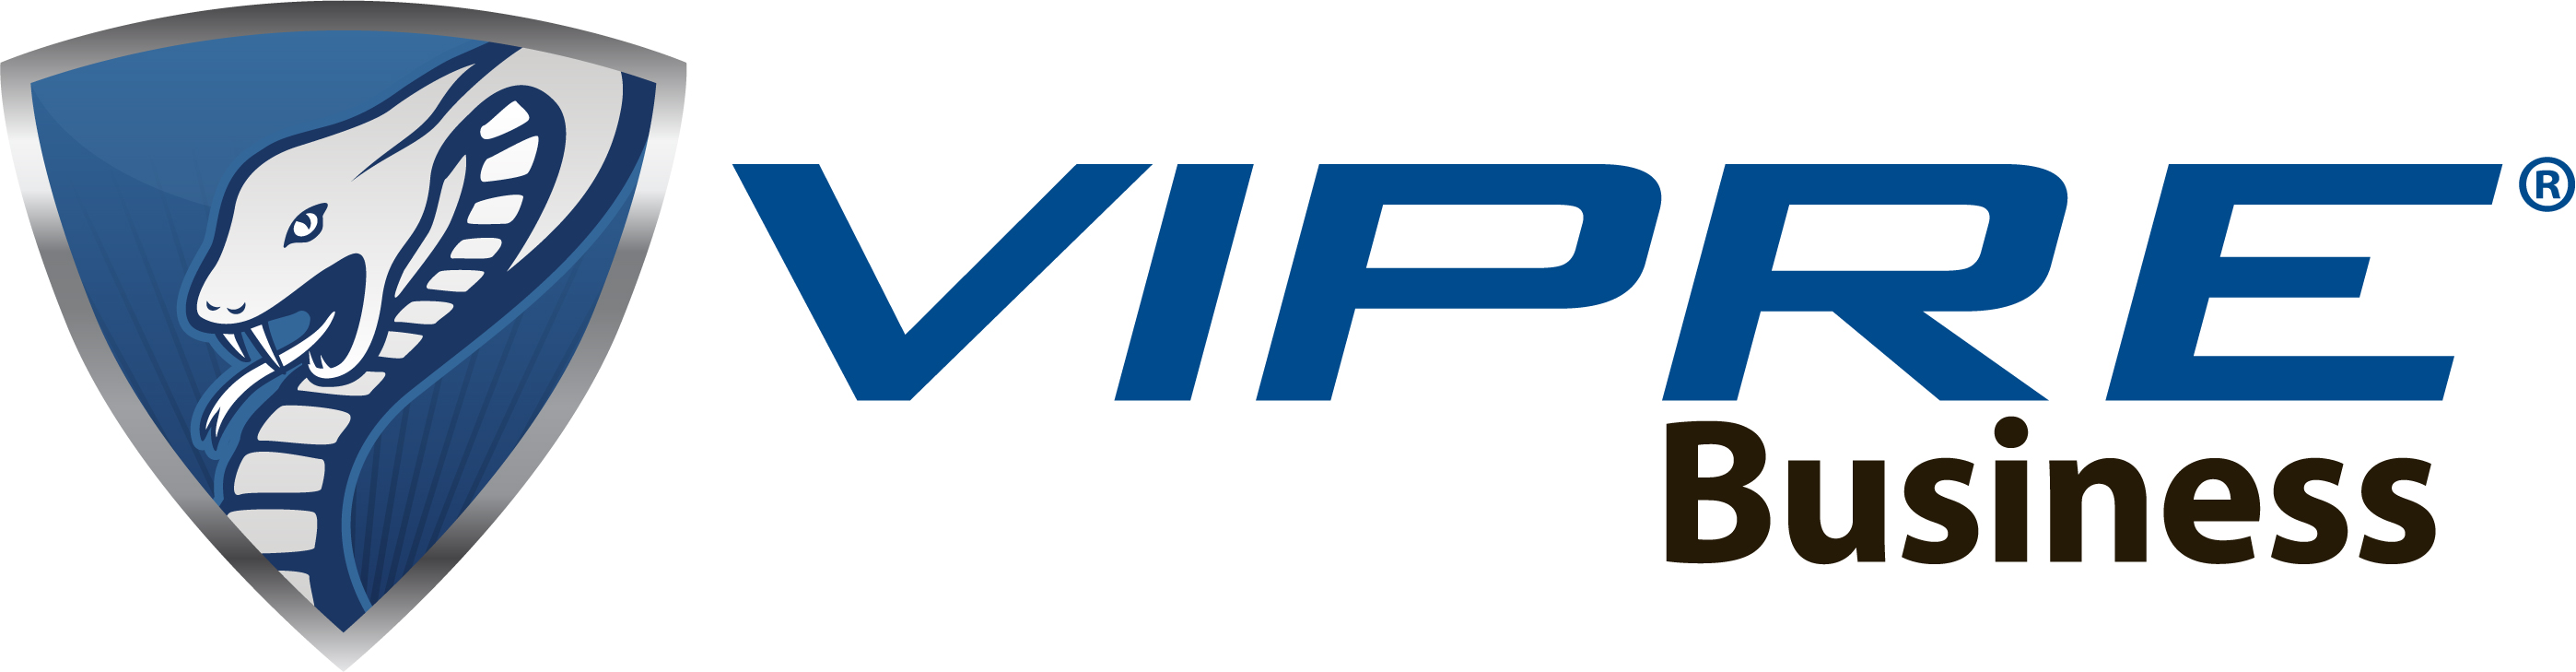 Viper security logo